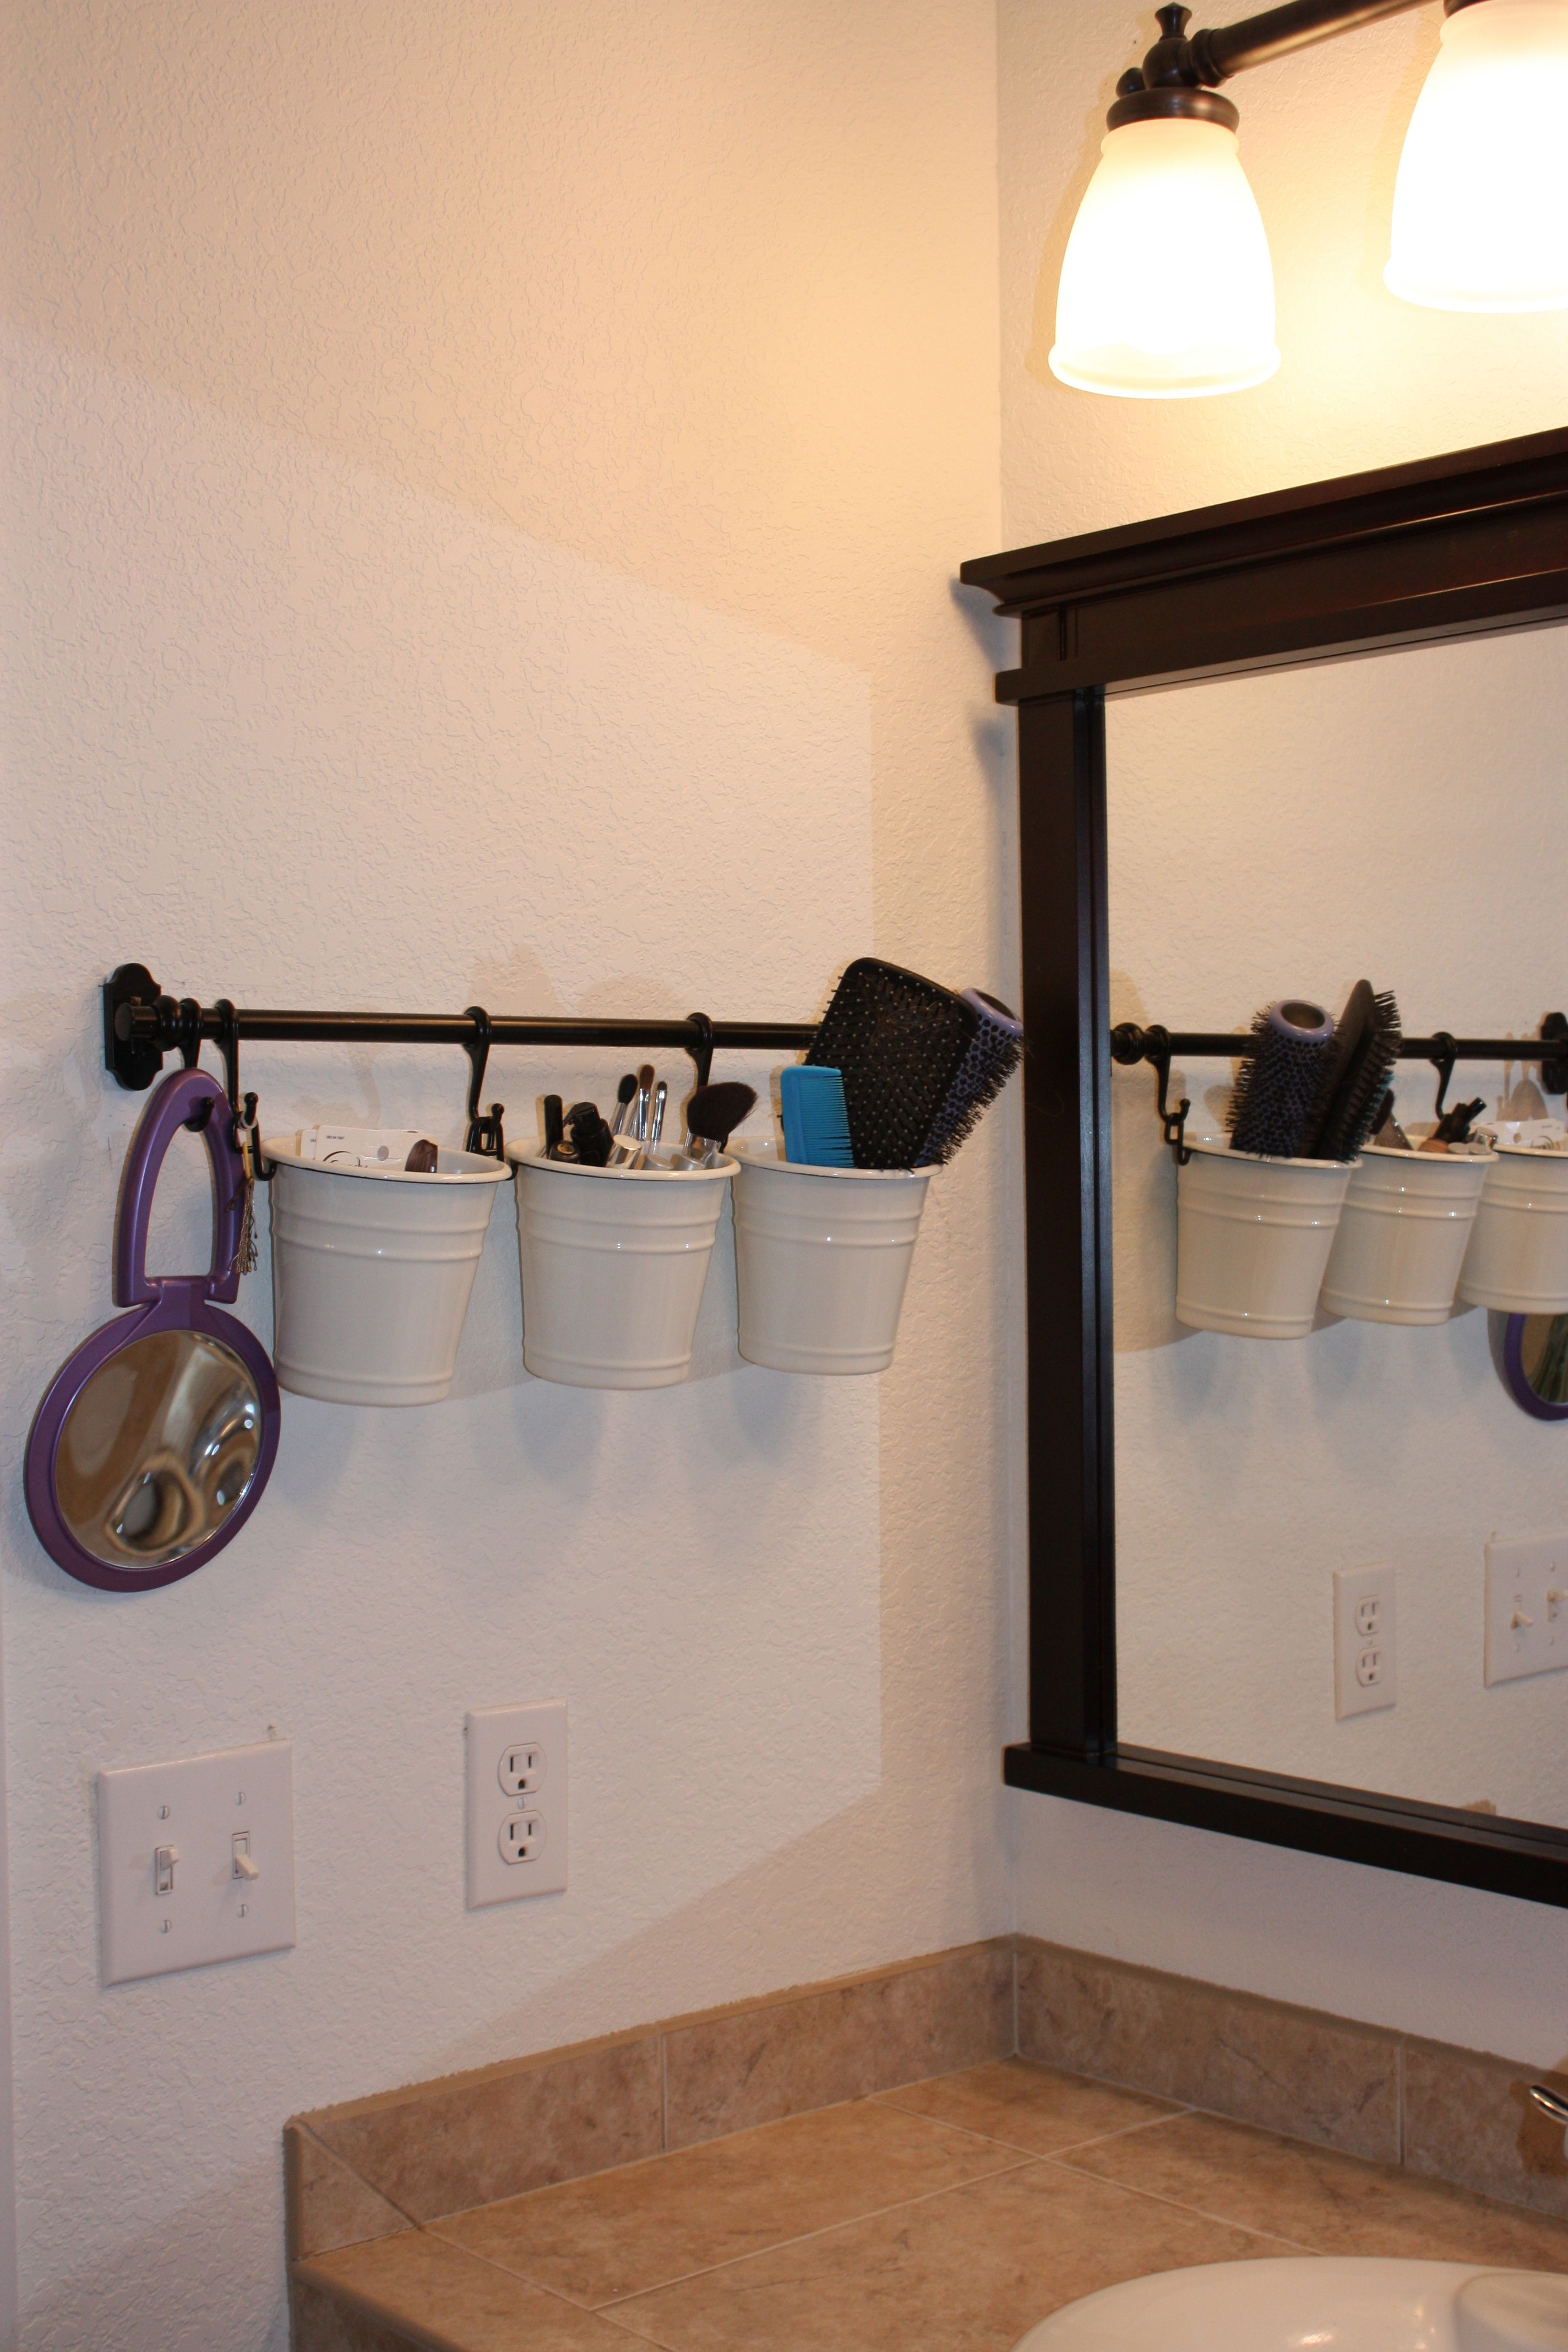 17 Best images about Bathroom Storage Ideas on Pinterest   Bathroom  drawers  Towels and Towel storage. 17 Best images about Bathroom Storage Ideas on Pinterest